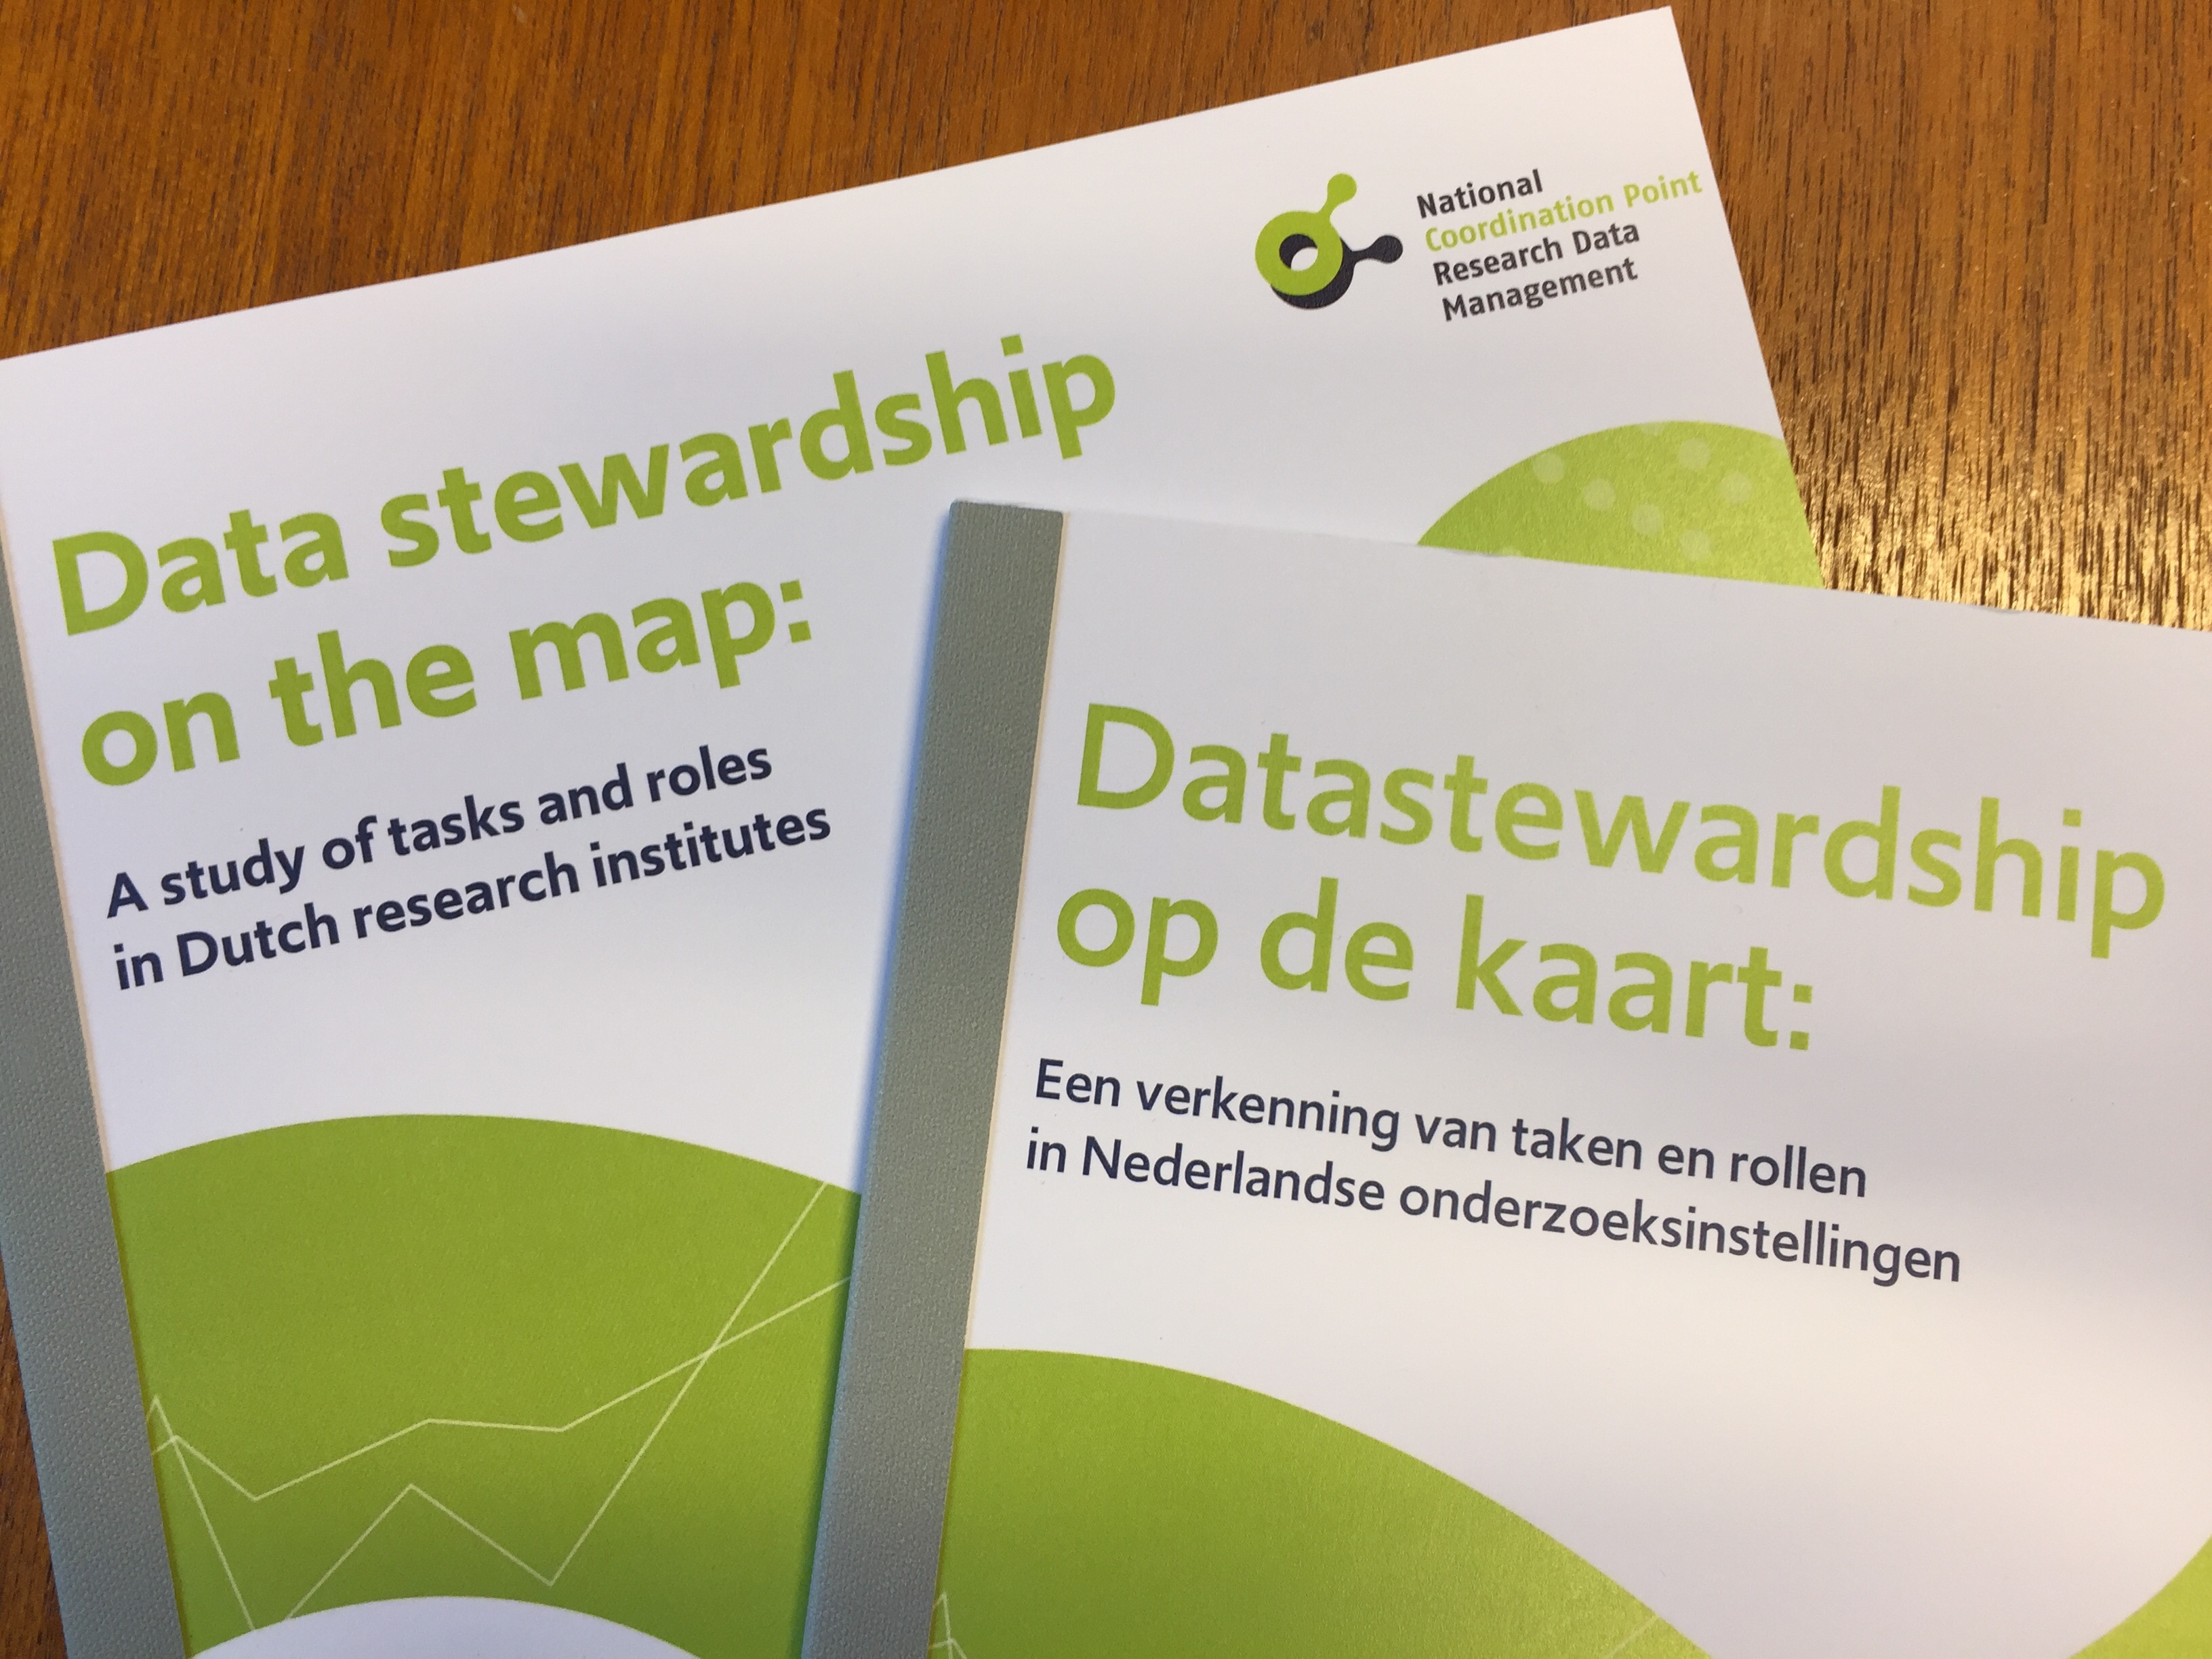 Report: data stewardship on the map